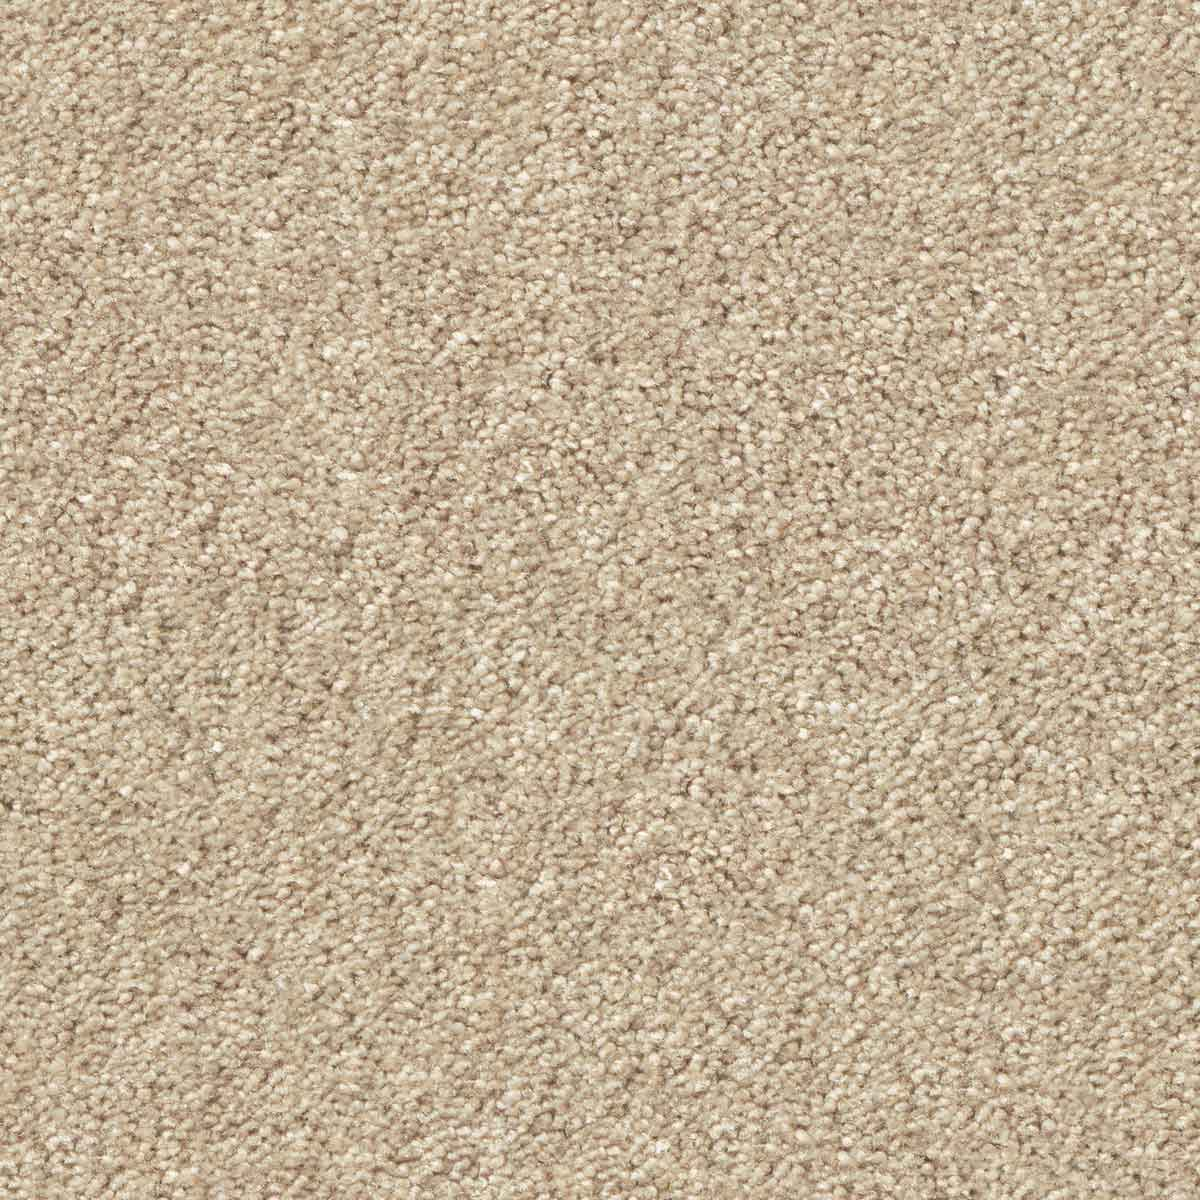 Outdoor Teppich 3 M Silky Seal Teppich Marzipan 2 50 X 3 50 M Object Carpet